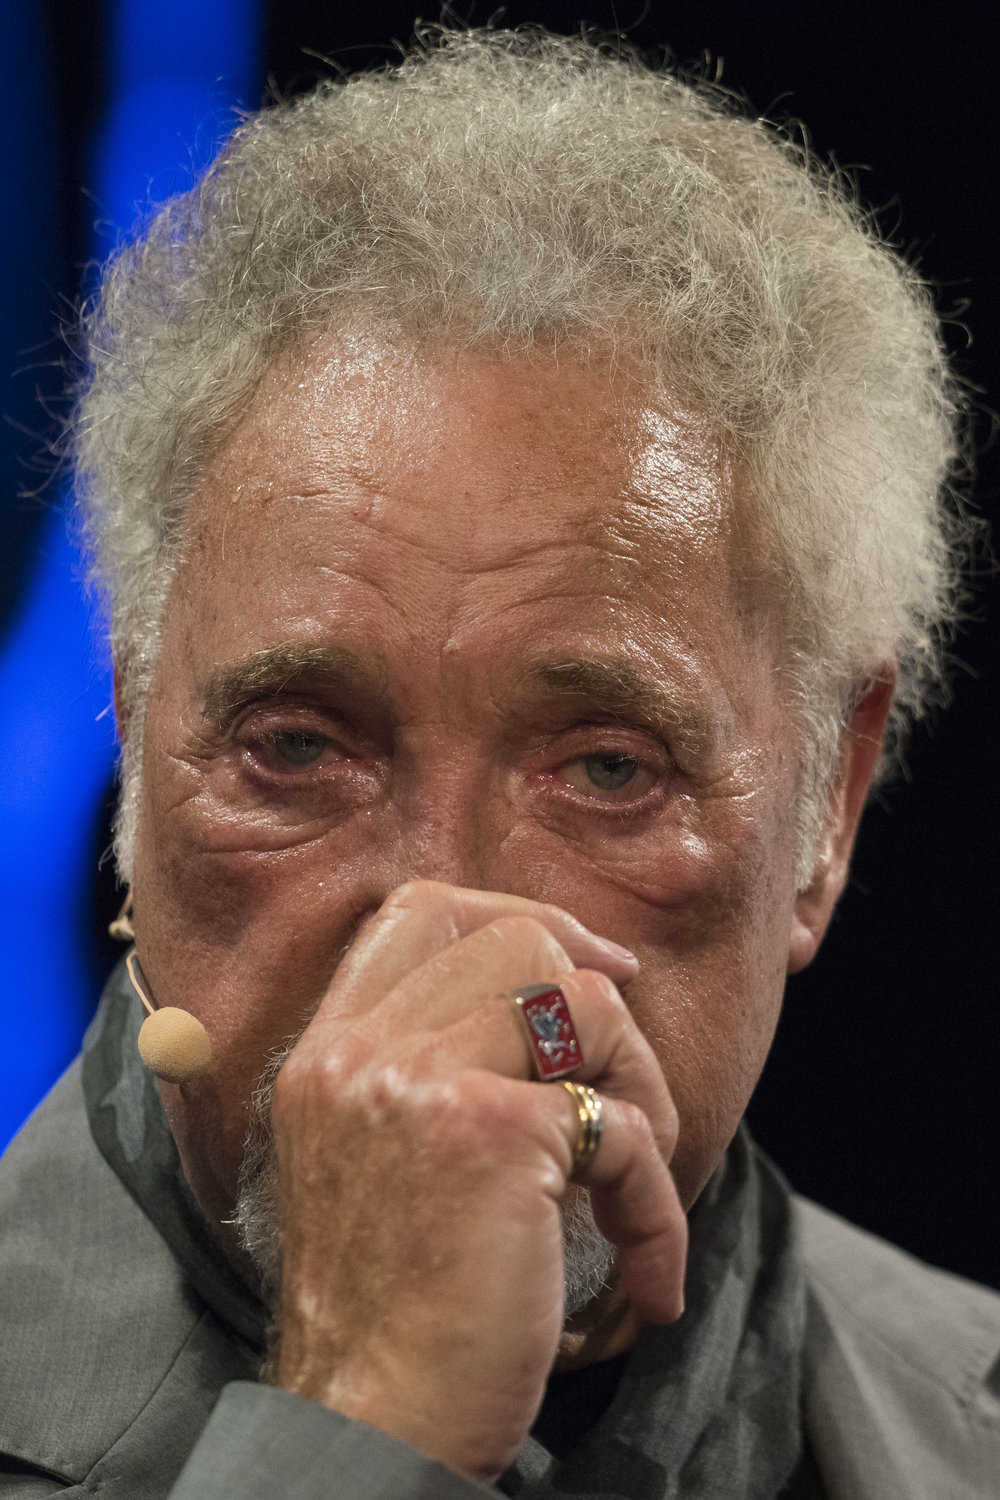 HAY-ON-WYE, WALES - JUNE 05: